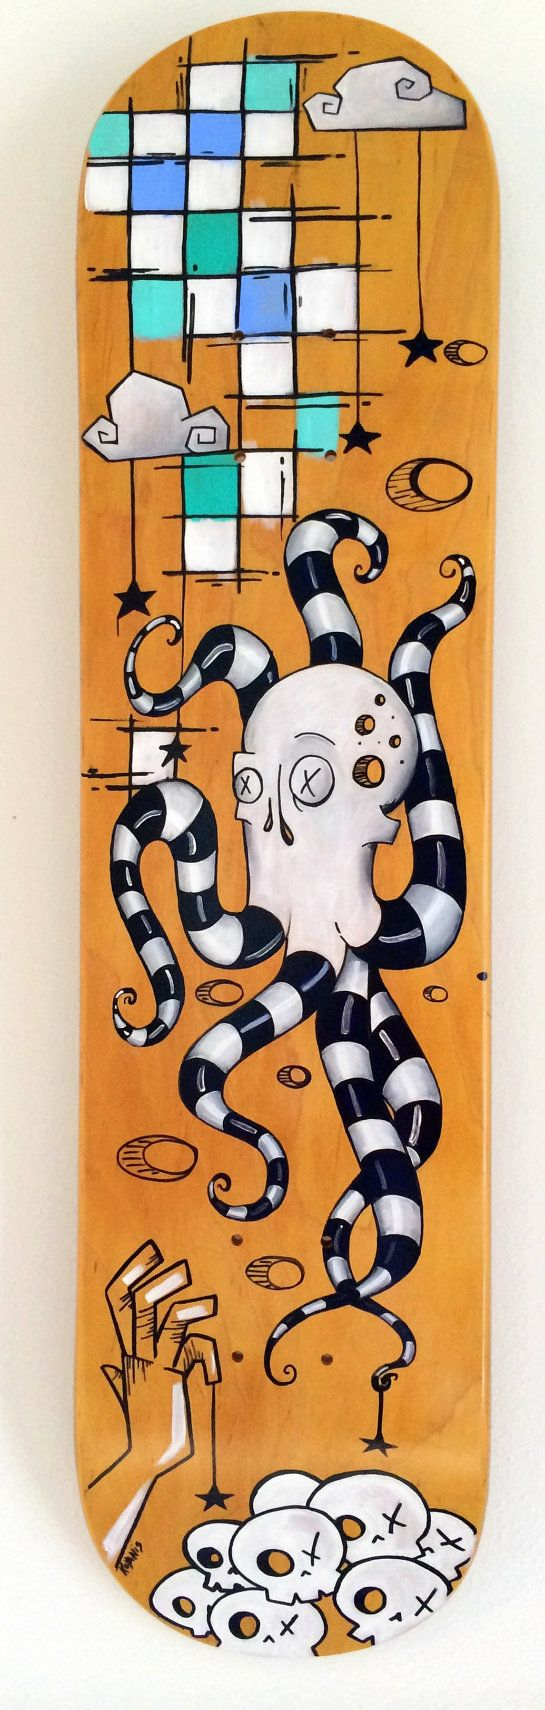 "Skateboard Art ""Video Game"" Original Surreal Painting on Skateboard Deck"